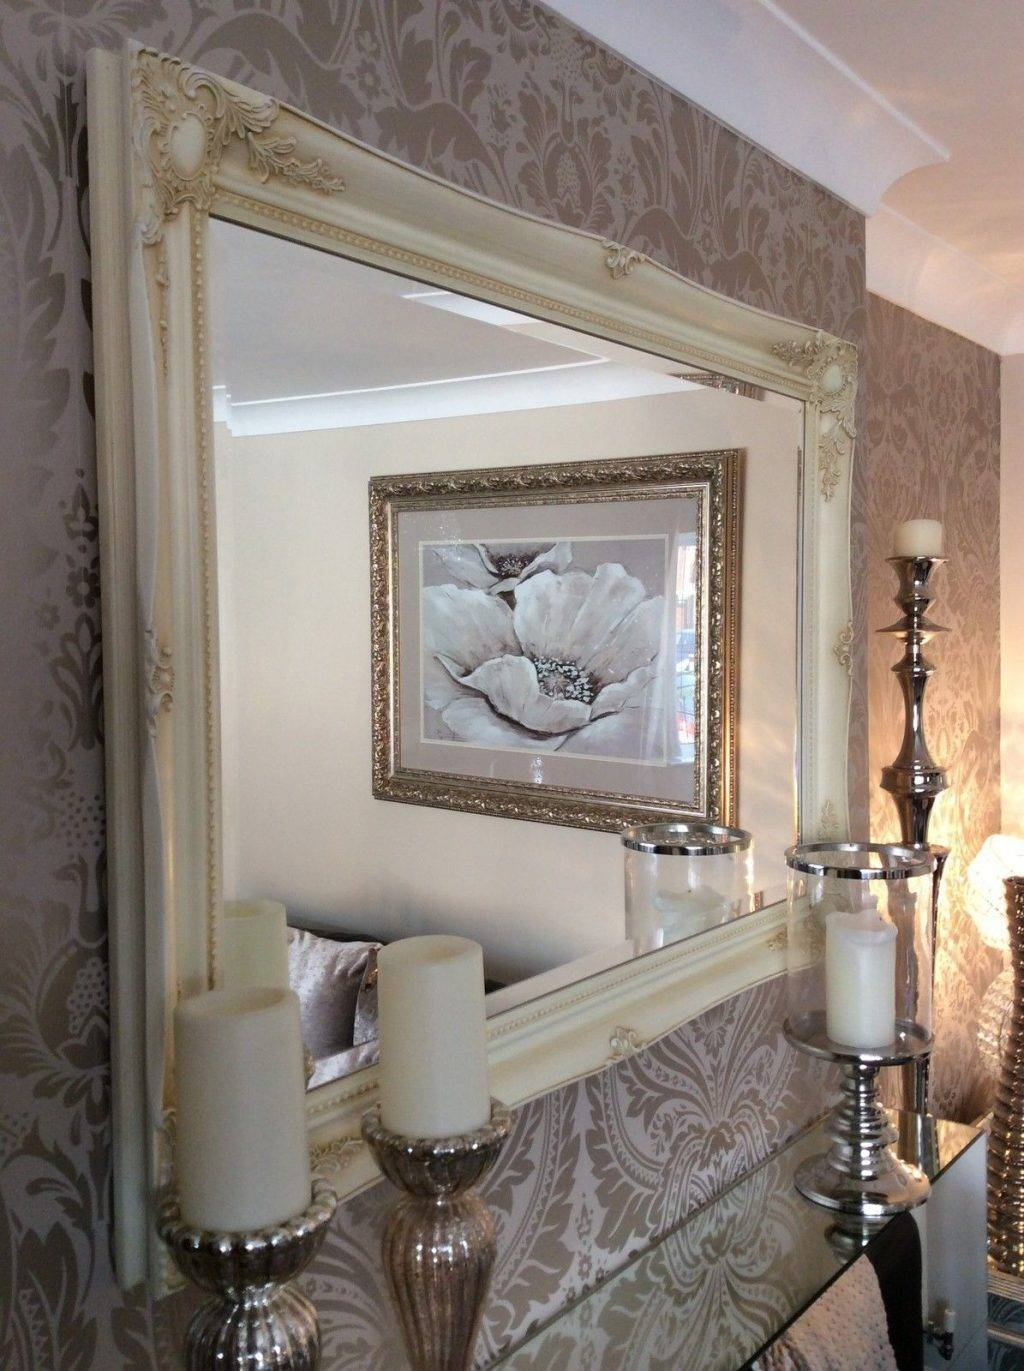 Shabby Chic Wall Mirror 73 Trendy Interior Or Fabulous Large Cream for Large Shabby Chic Mirrors (Image 21 of 25)